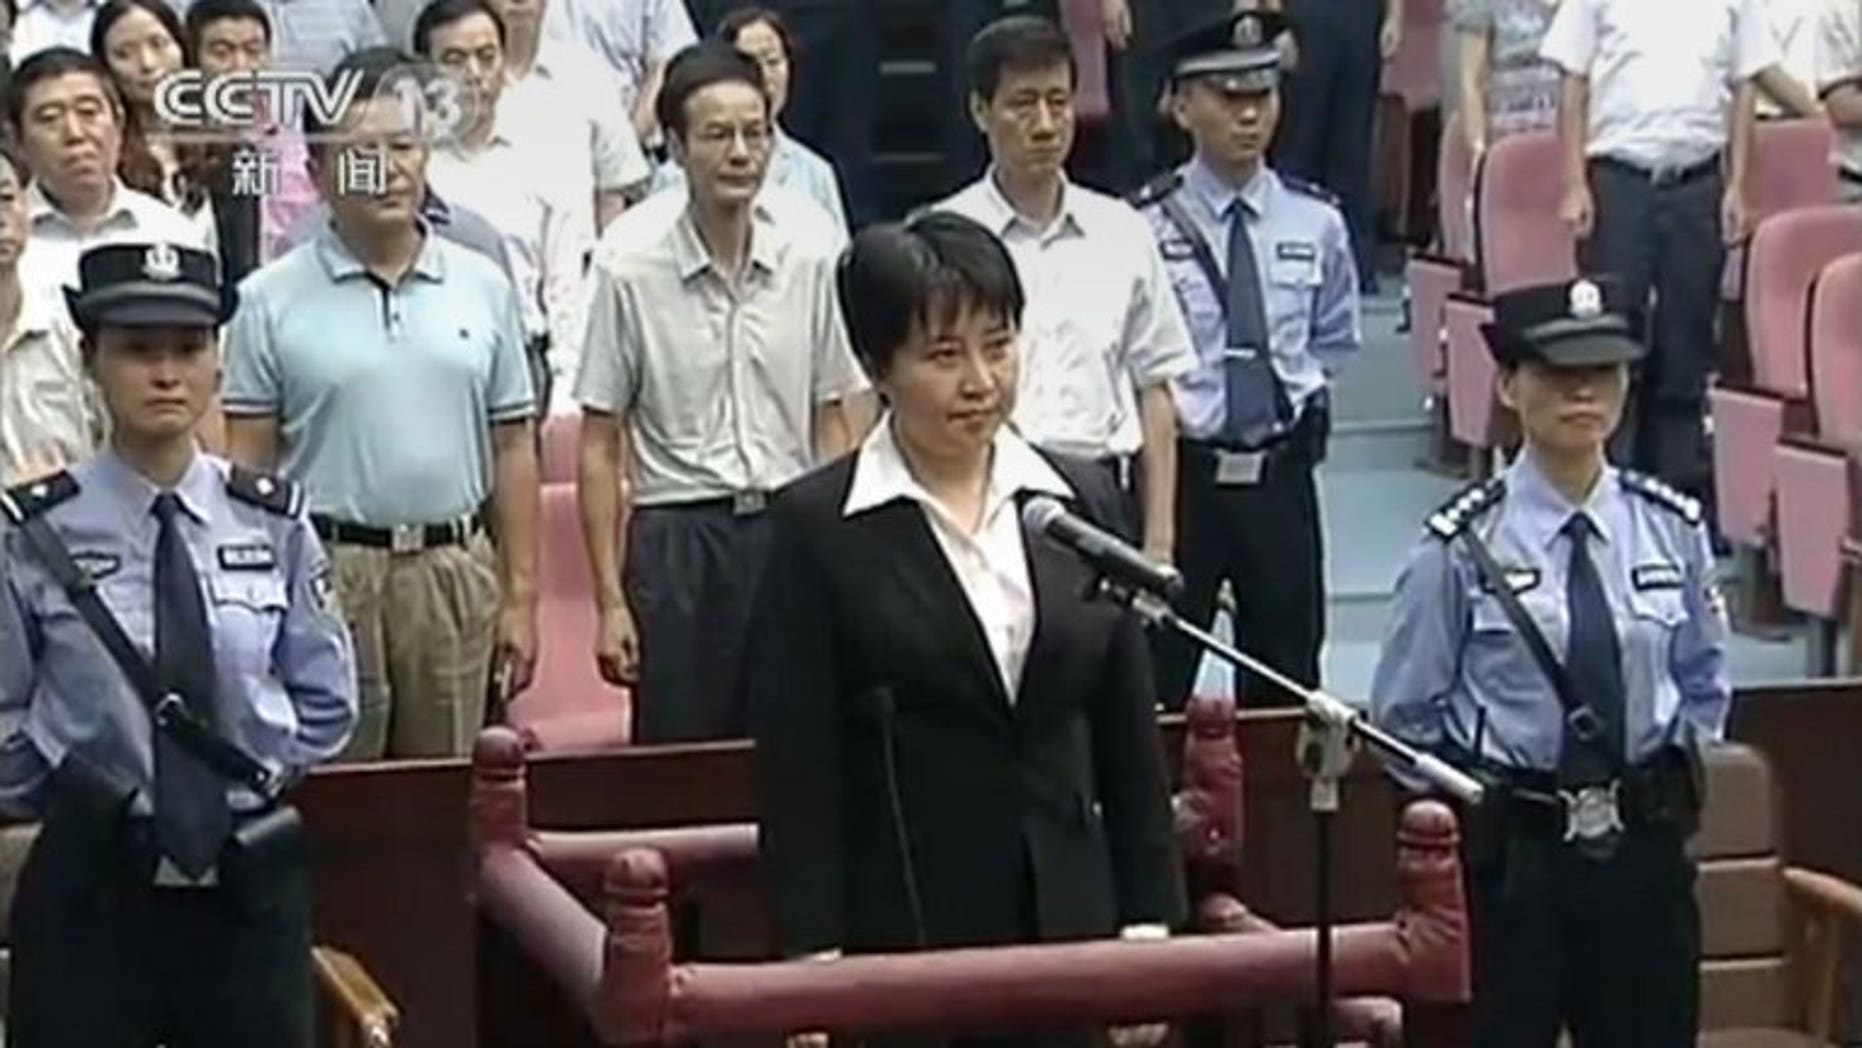 Gu Kailai, the wife of disgraced Chinese politician Bo Xilai, in court during her murder sentencing on August 20, 2012. Relatives of Neil Heywood, the British businessman Gu was convicted of murdering, are close to agreeing compensation with her representatives, a lawyer said Monday.